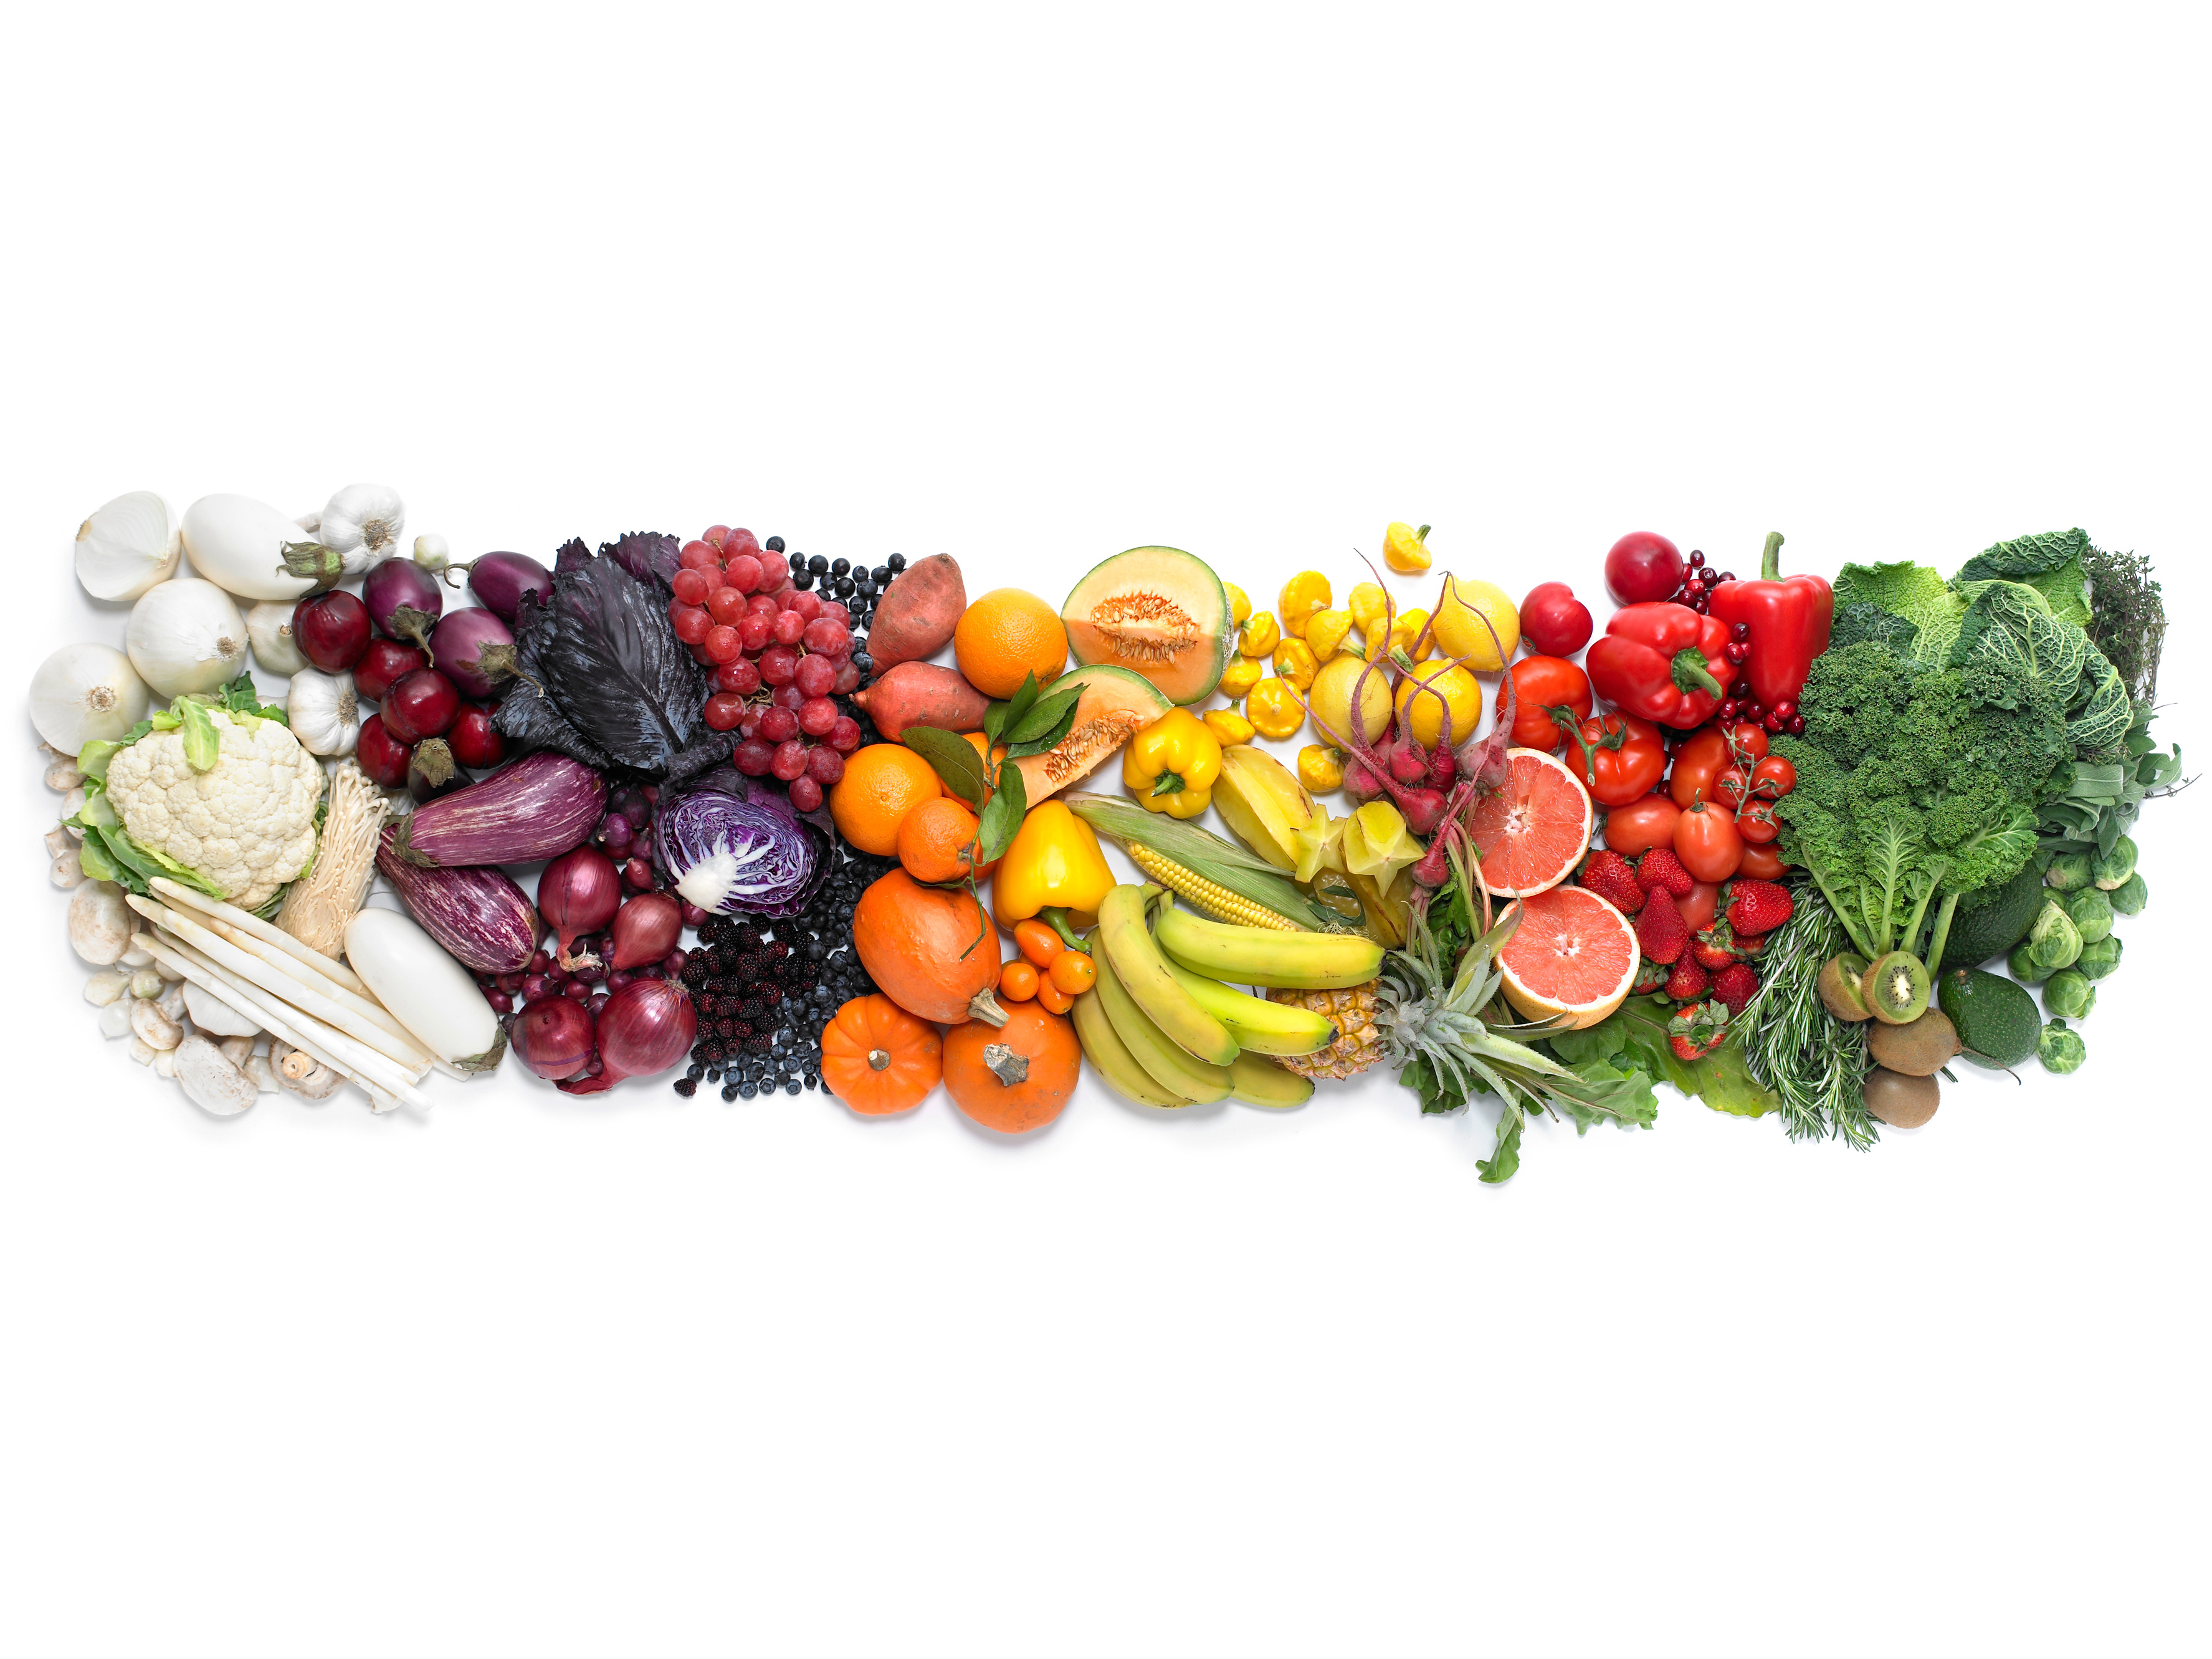 Colorful Diet Fruits and Vegetables